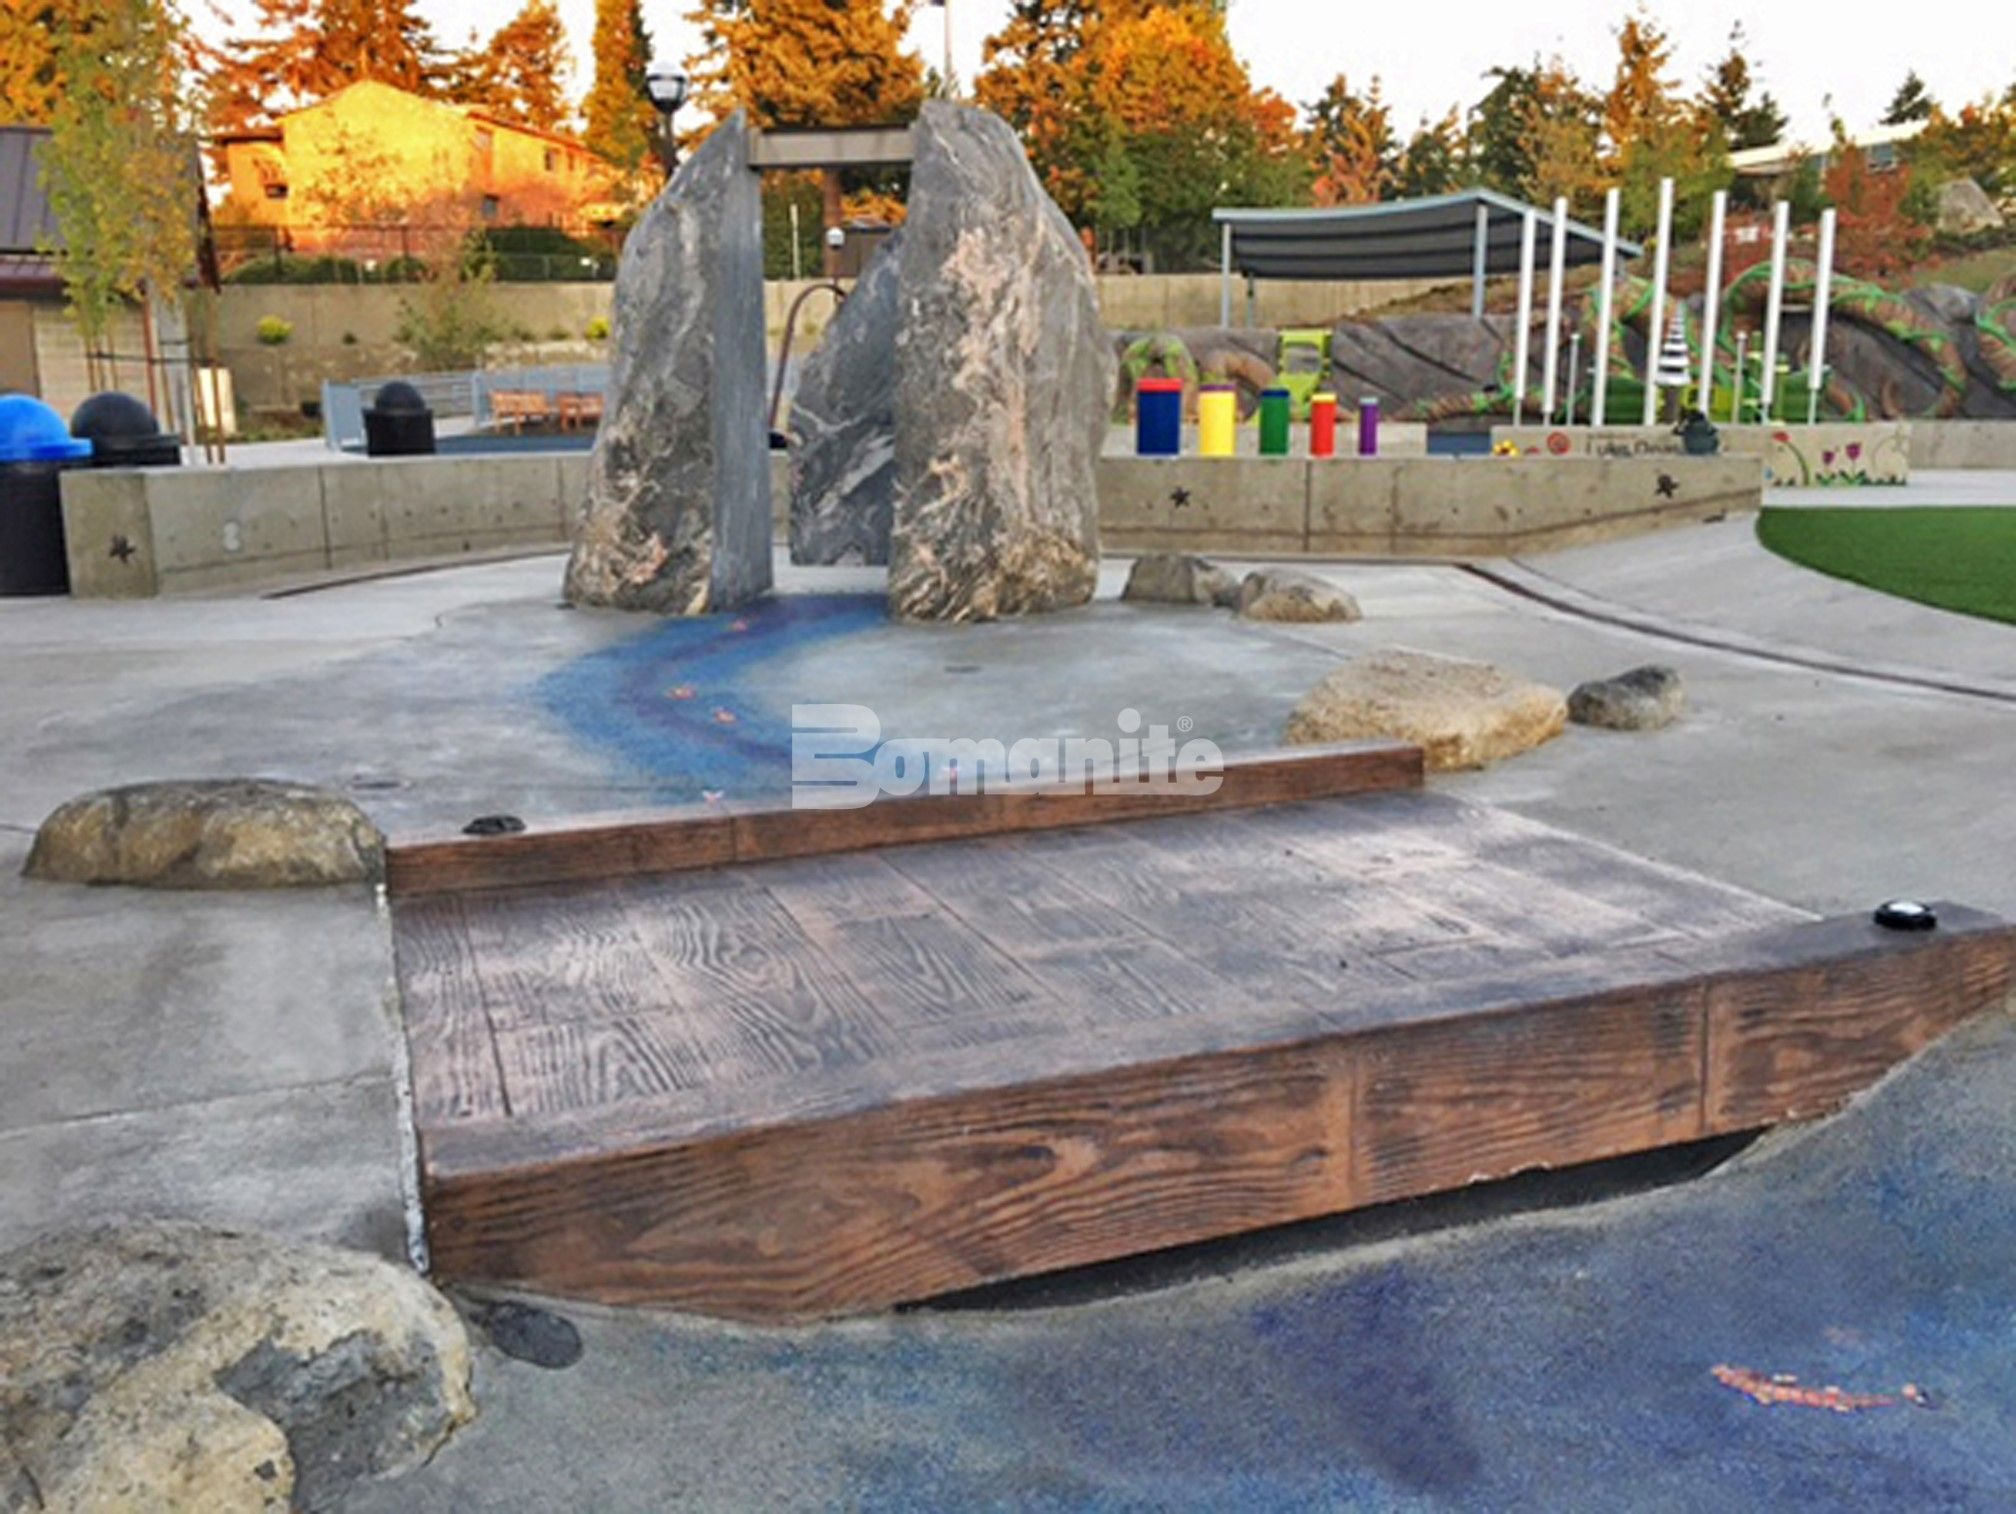 Splash Pad at Downtown Bellevue Park Designs Inspiration Playground using Bomanite Decorative Concrete from Belarde Company, Washington forming a Concrete Bridge for the Splash Pad.